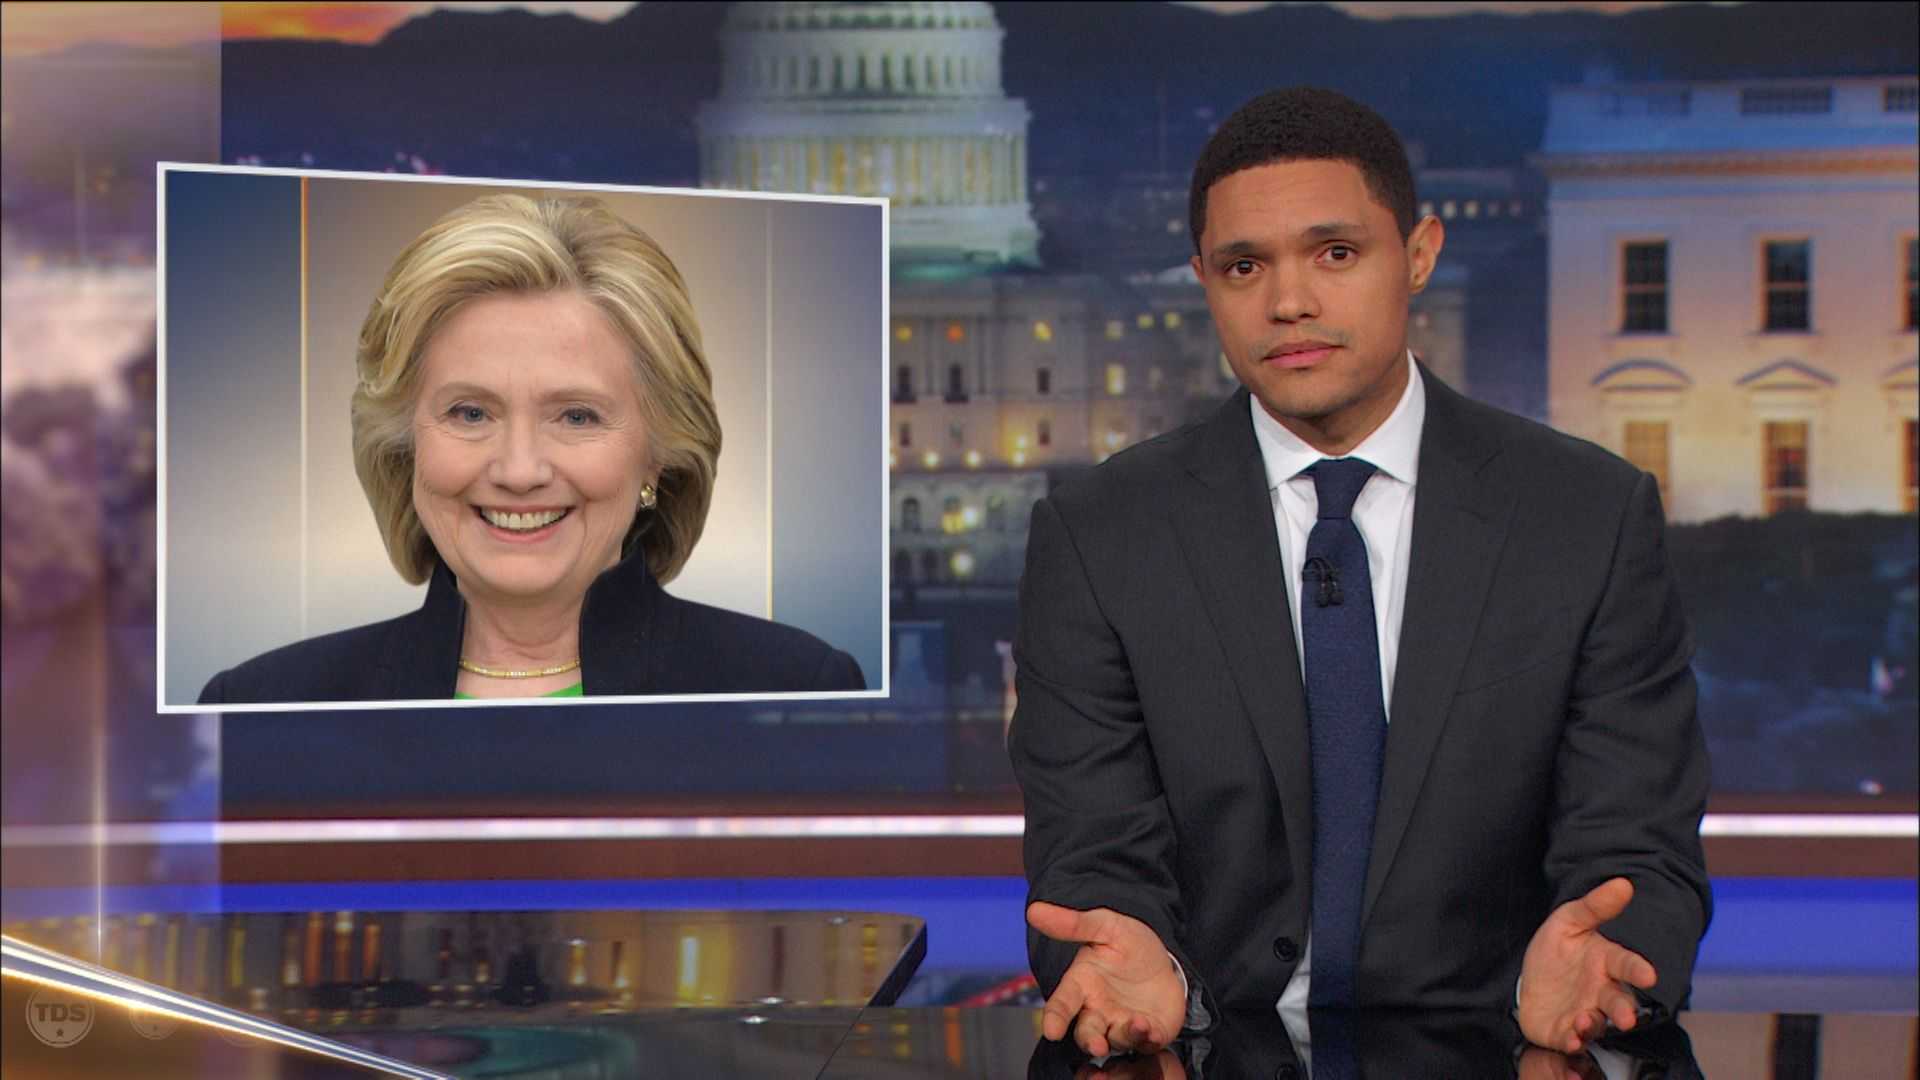 hillary clinton issues a non-apology for shielding a harasser - the